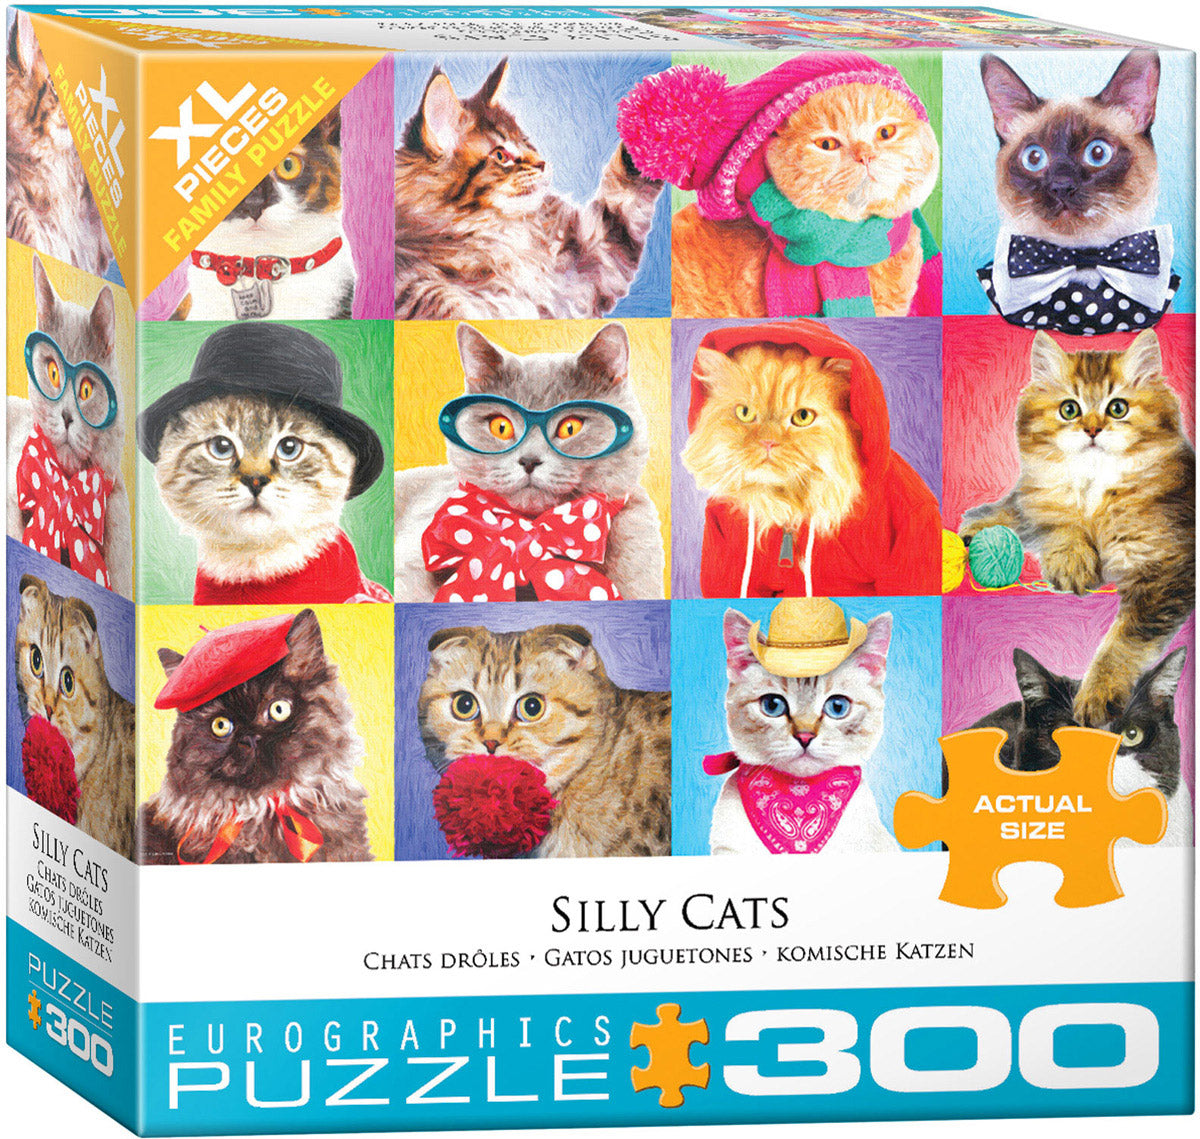 Silly Cats 300 Piece Puzzle - Quick Ship - Puzzlicious.com